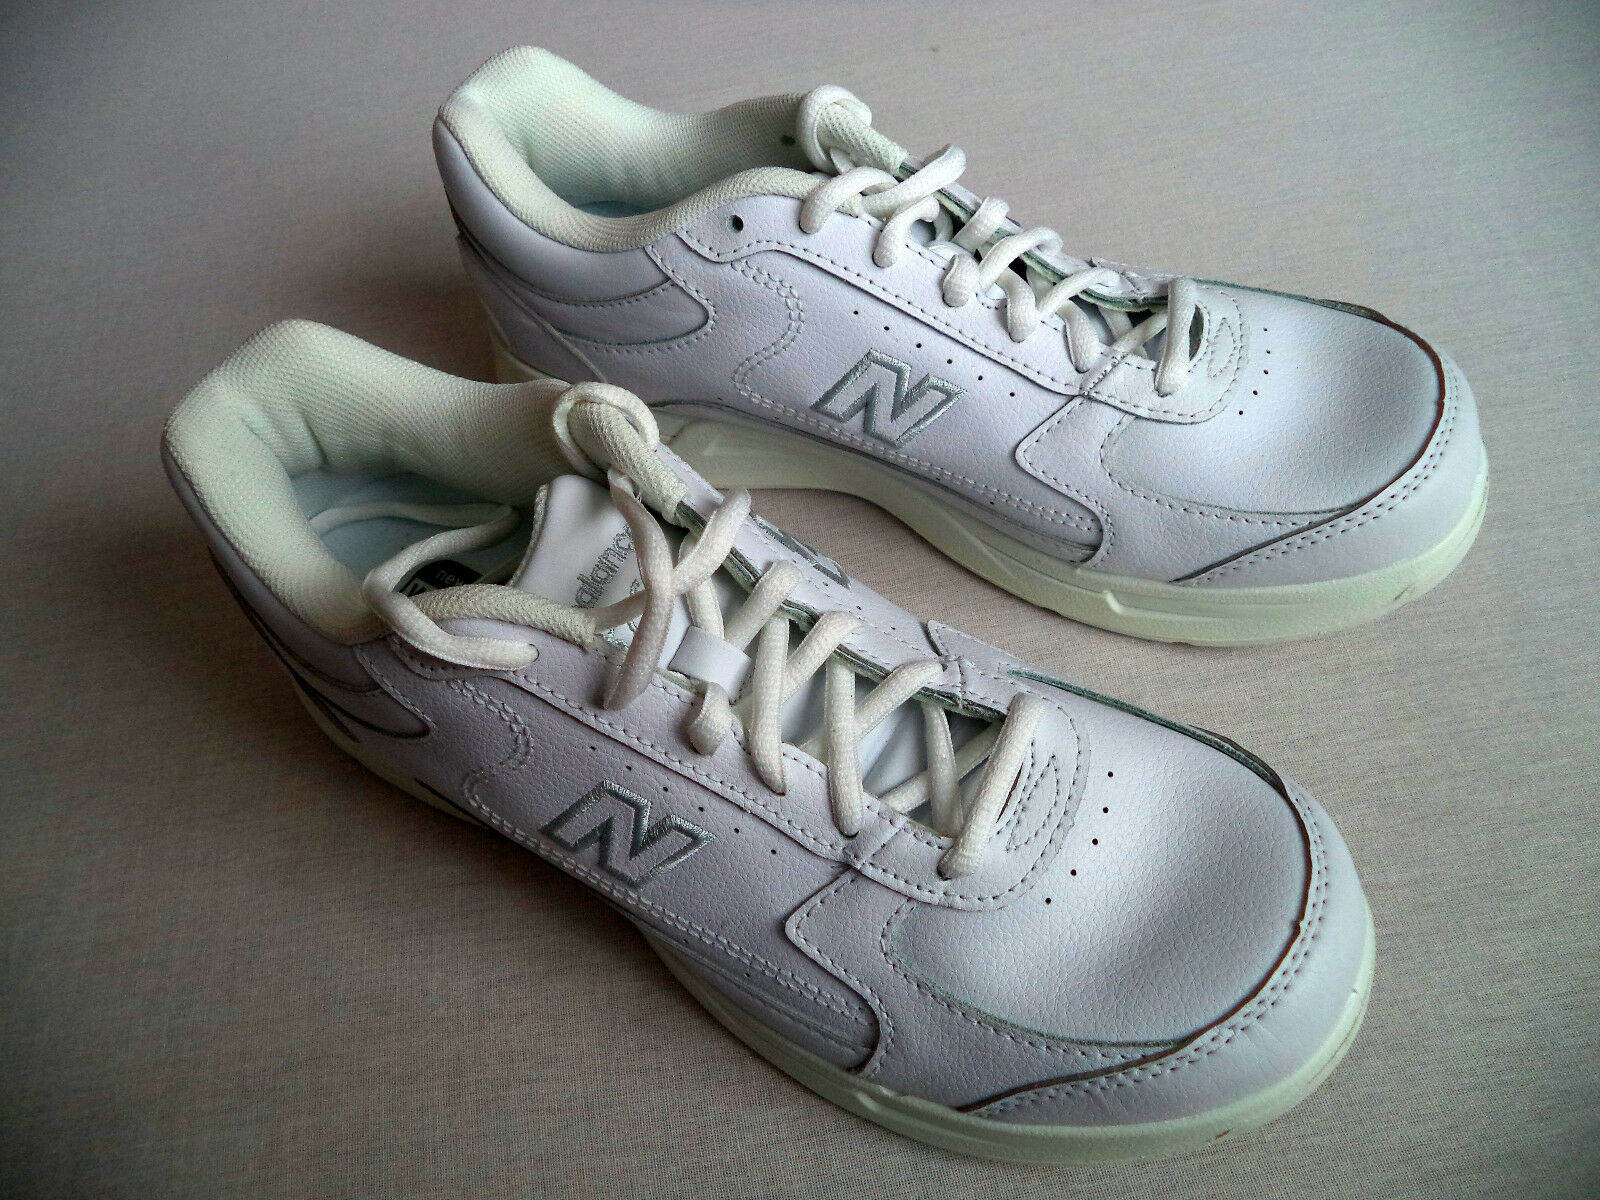 Womens NEW BALANCE 576 walking shoes sz 9.5 2A fitness gym DSL-2 nurse service